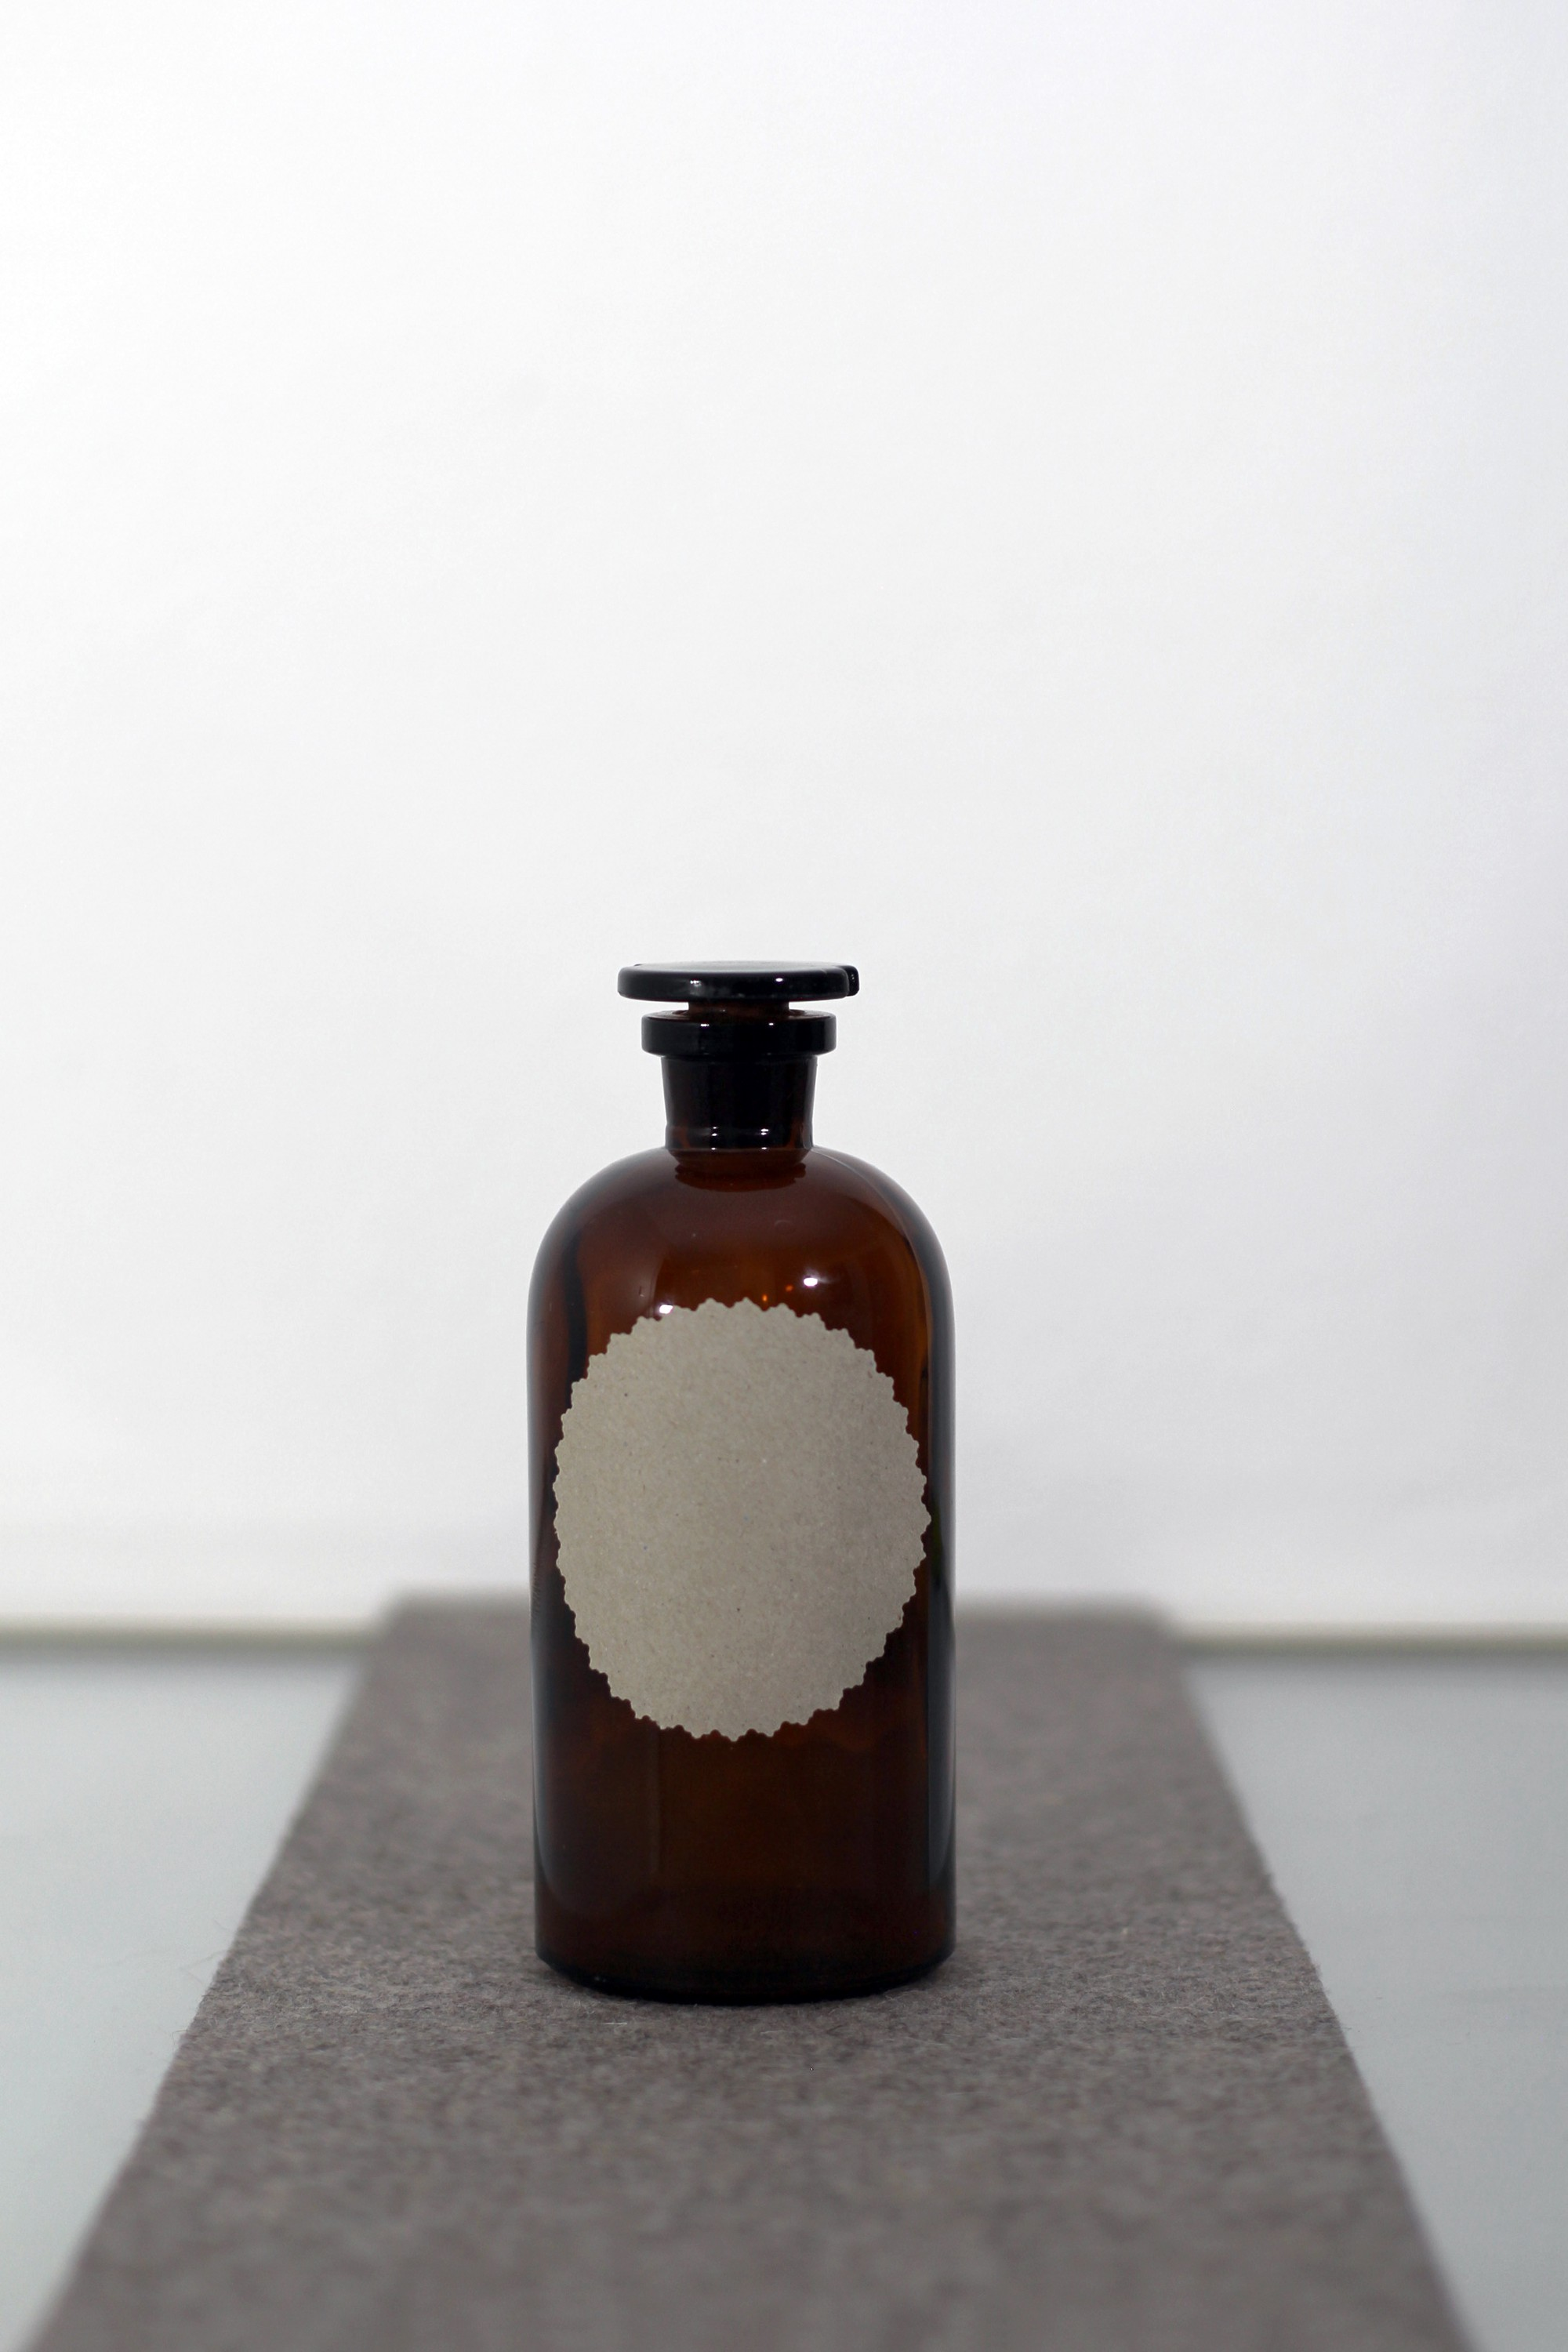 Antique brown bottle with a blank label